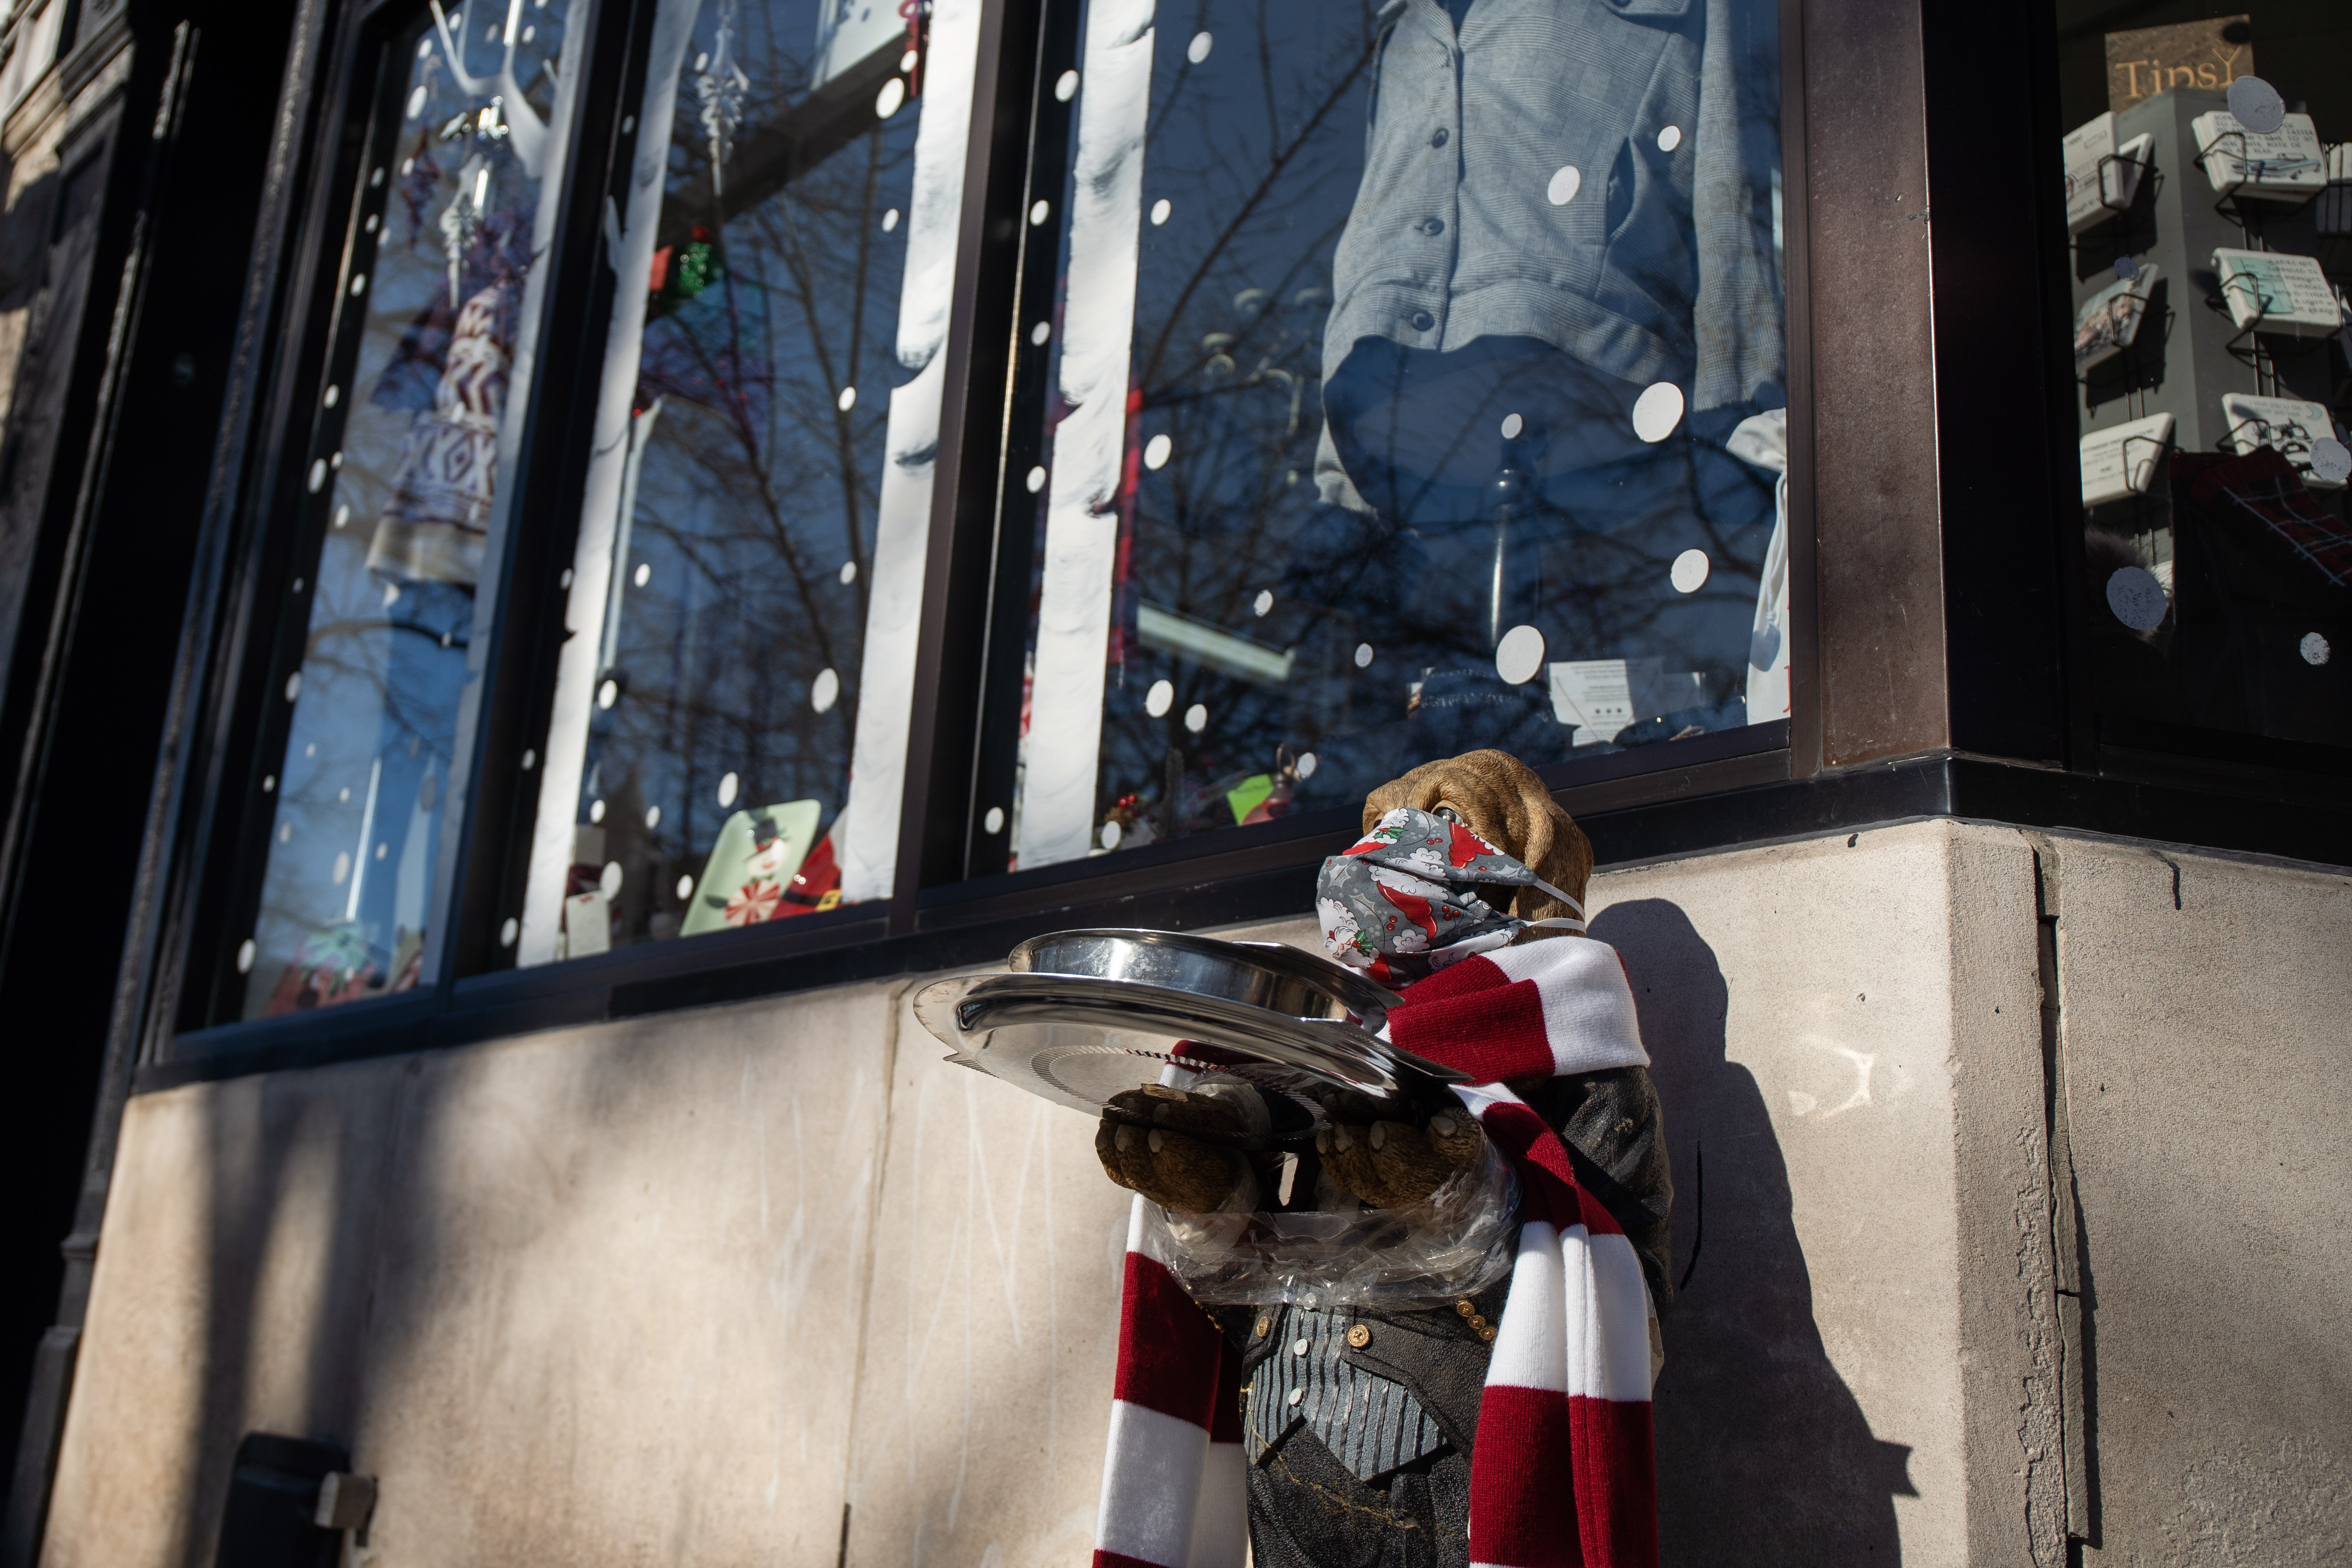 A statue of a masked dog stands outside Moondance, located at 2010 W. Roscoe St., which is participating in the Roscoe Village Chamber of Commerce's holiday window display contest, Saturday afternoon, Dec. 26, 2020.